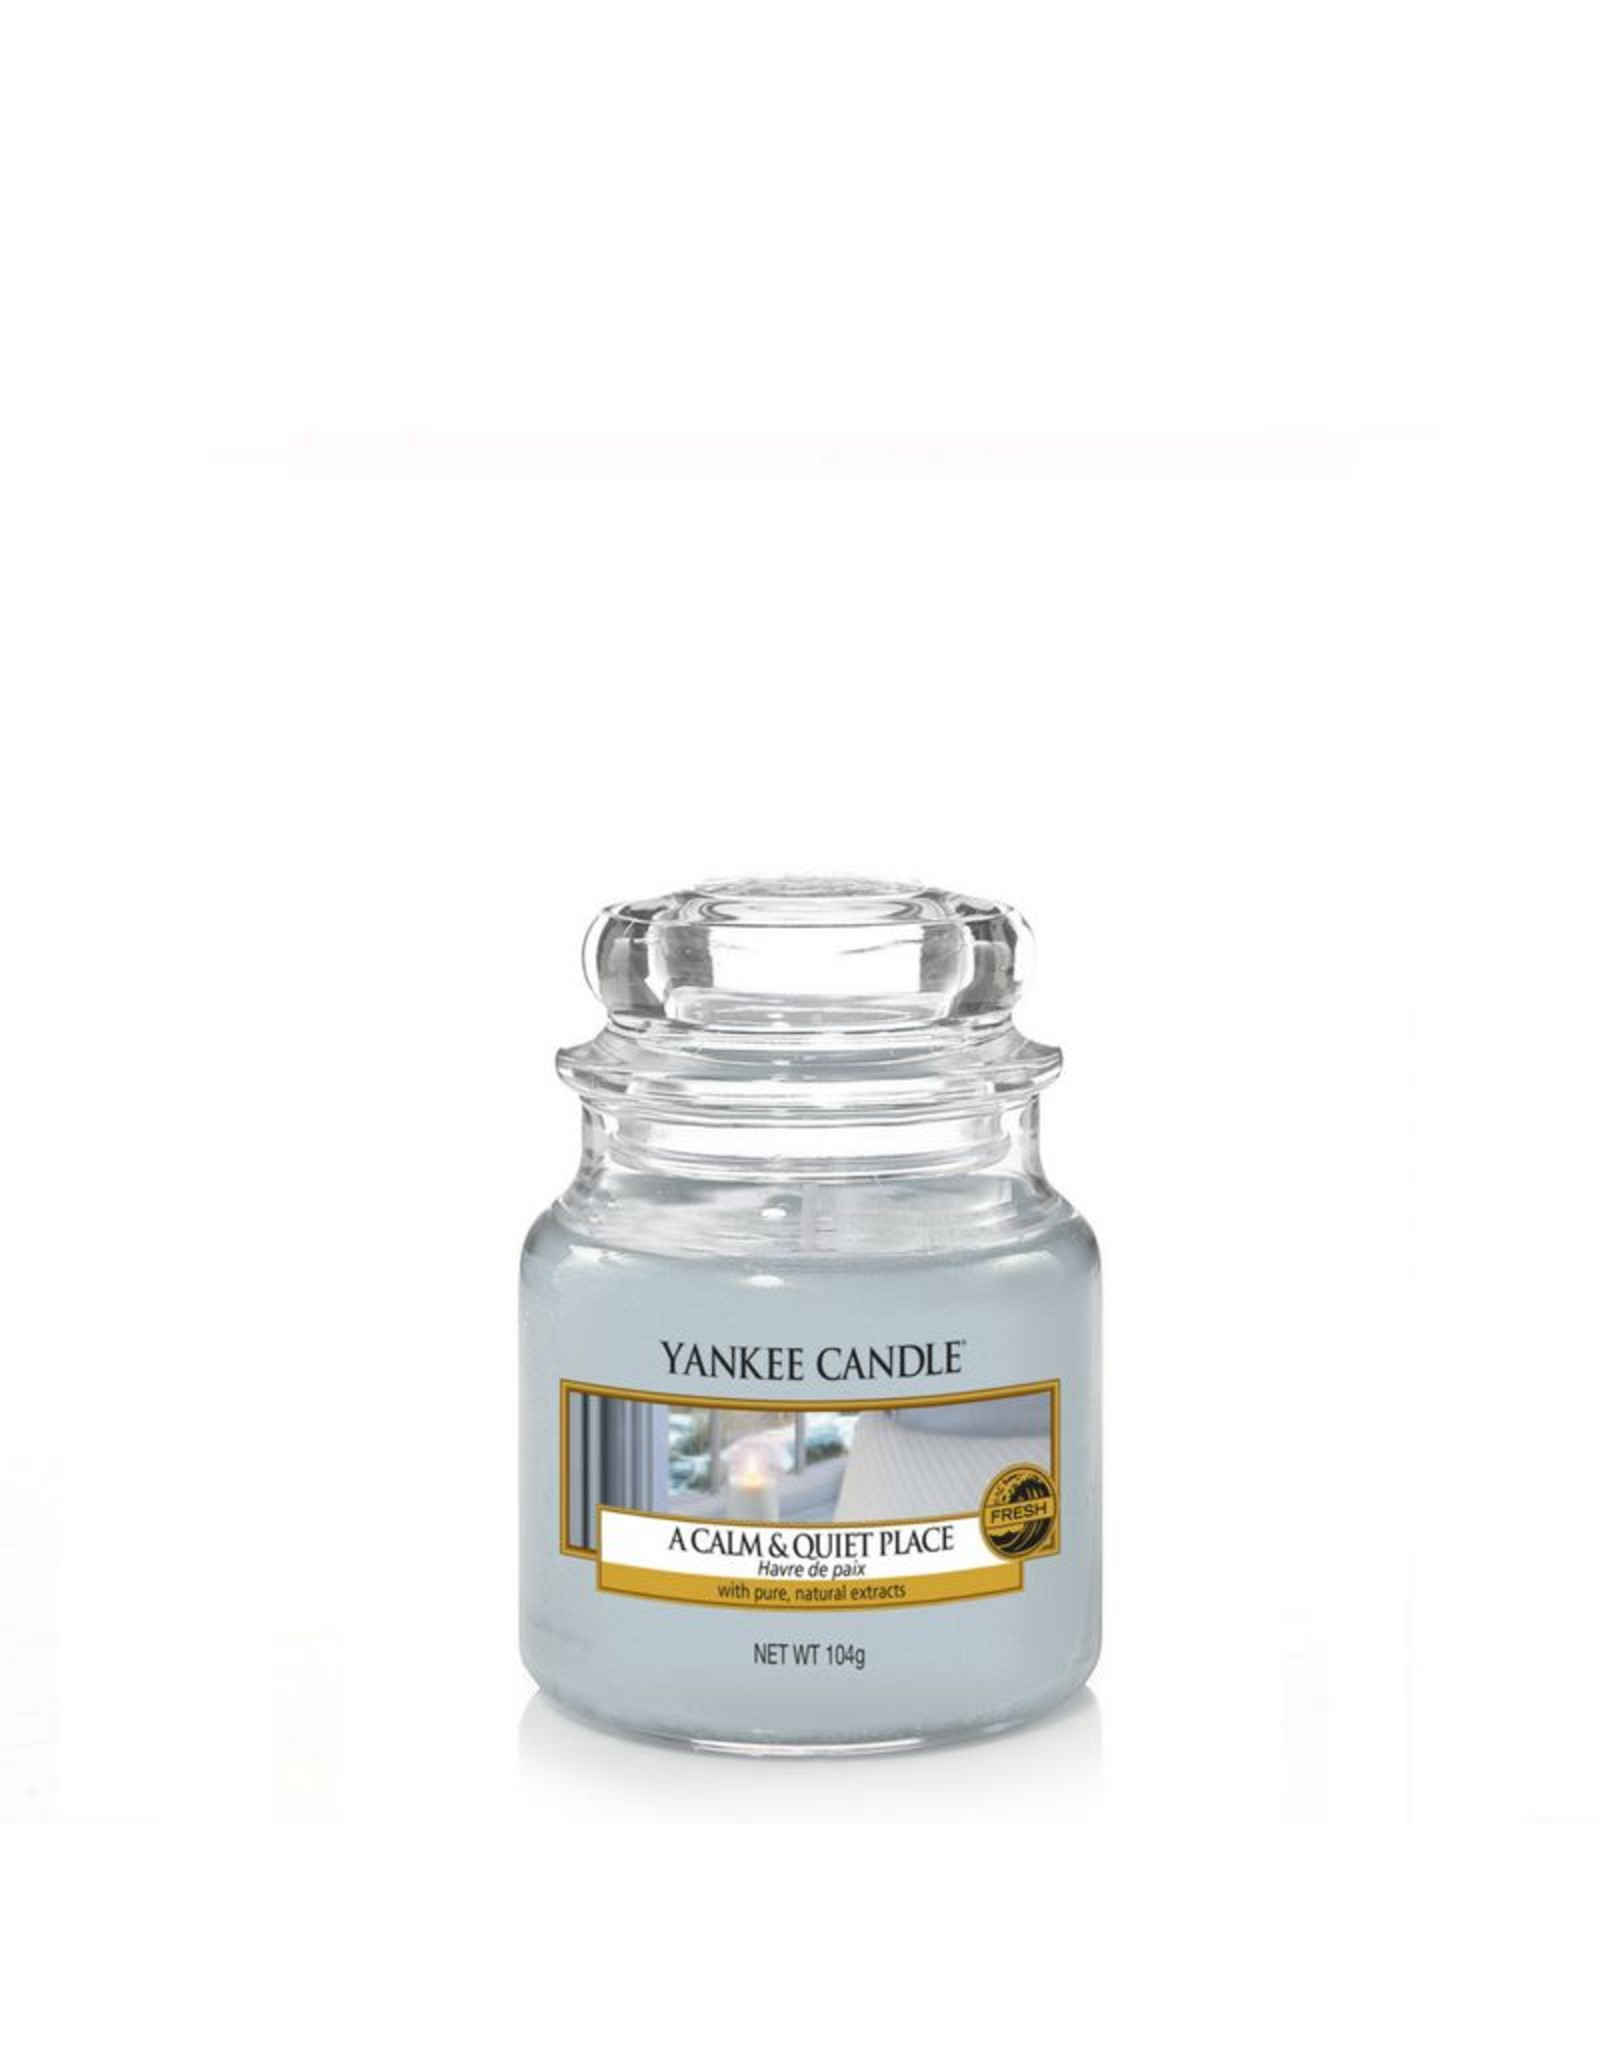 Yankee Candle A Calm and Quiet Place - Small Jar